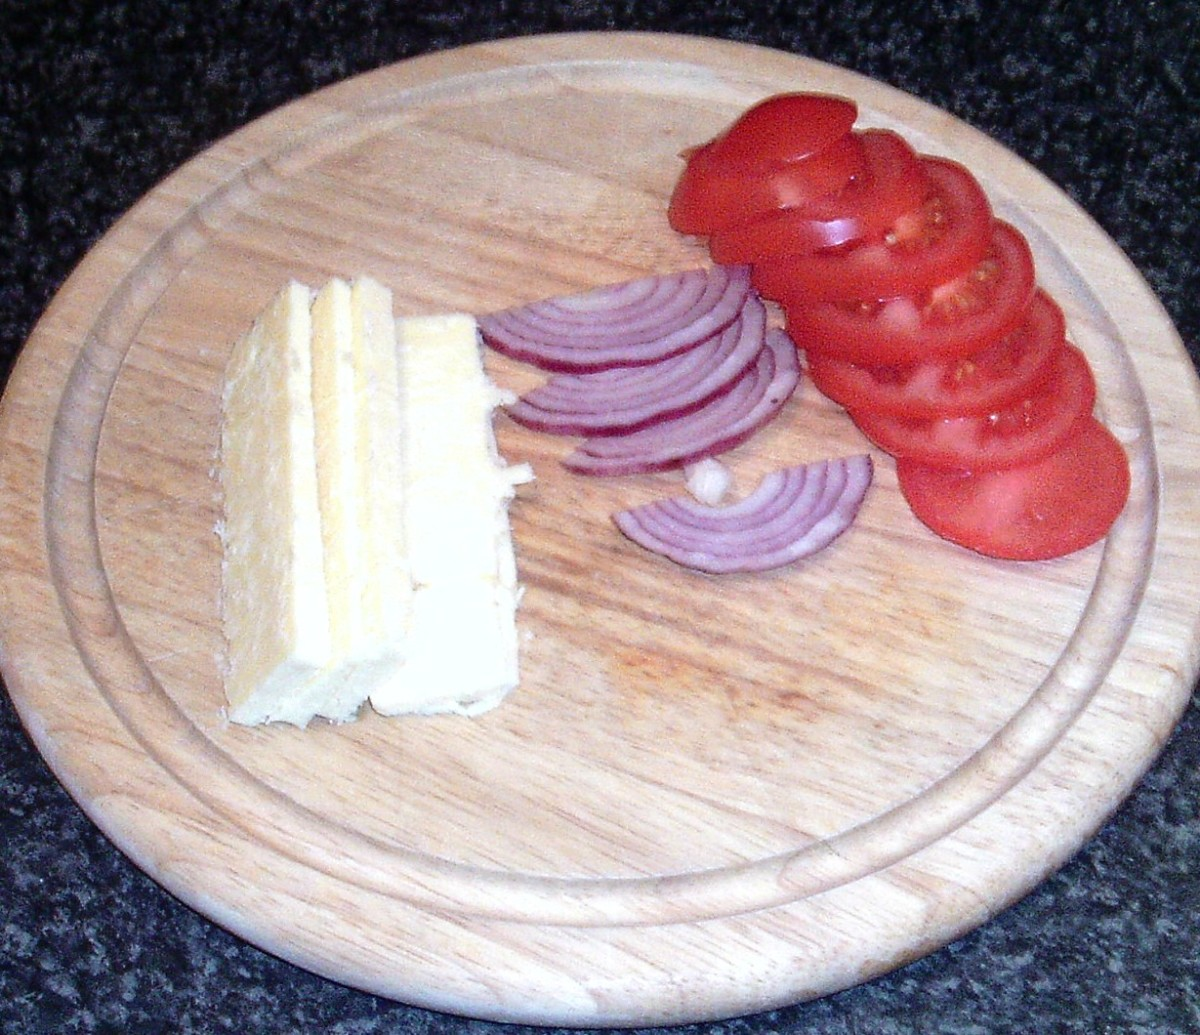 Cheddar cheese, red onion and tomato